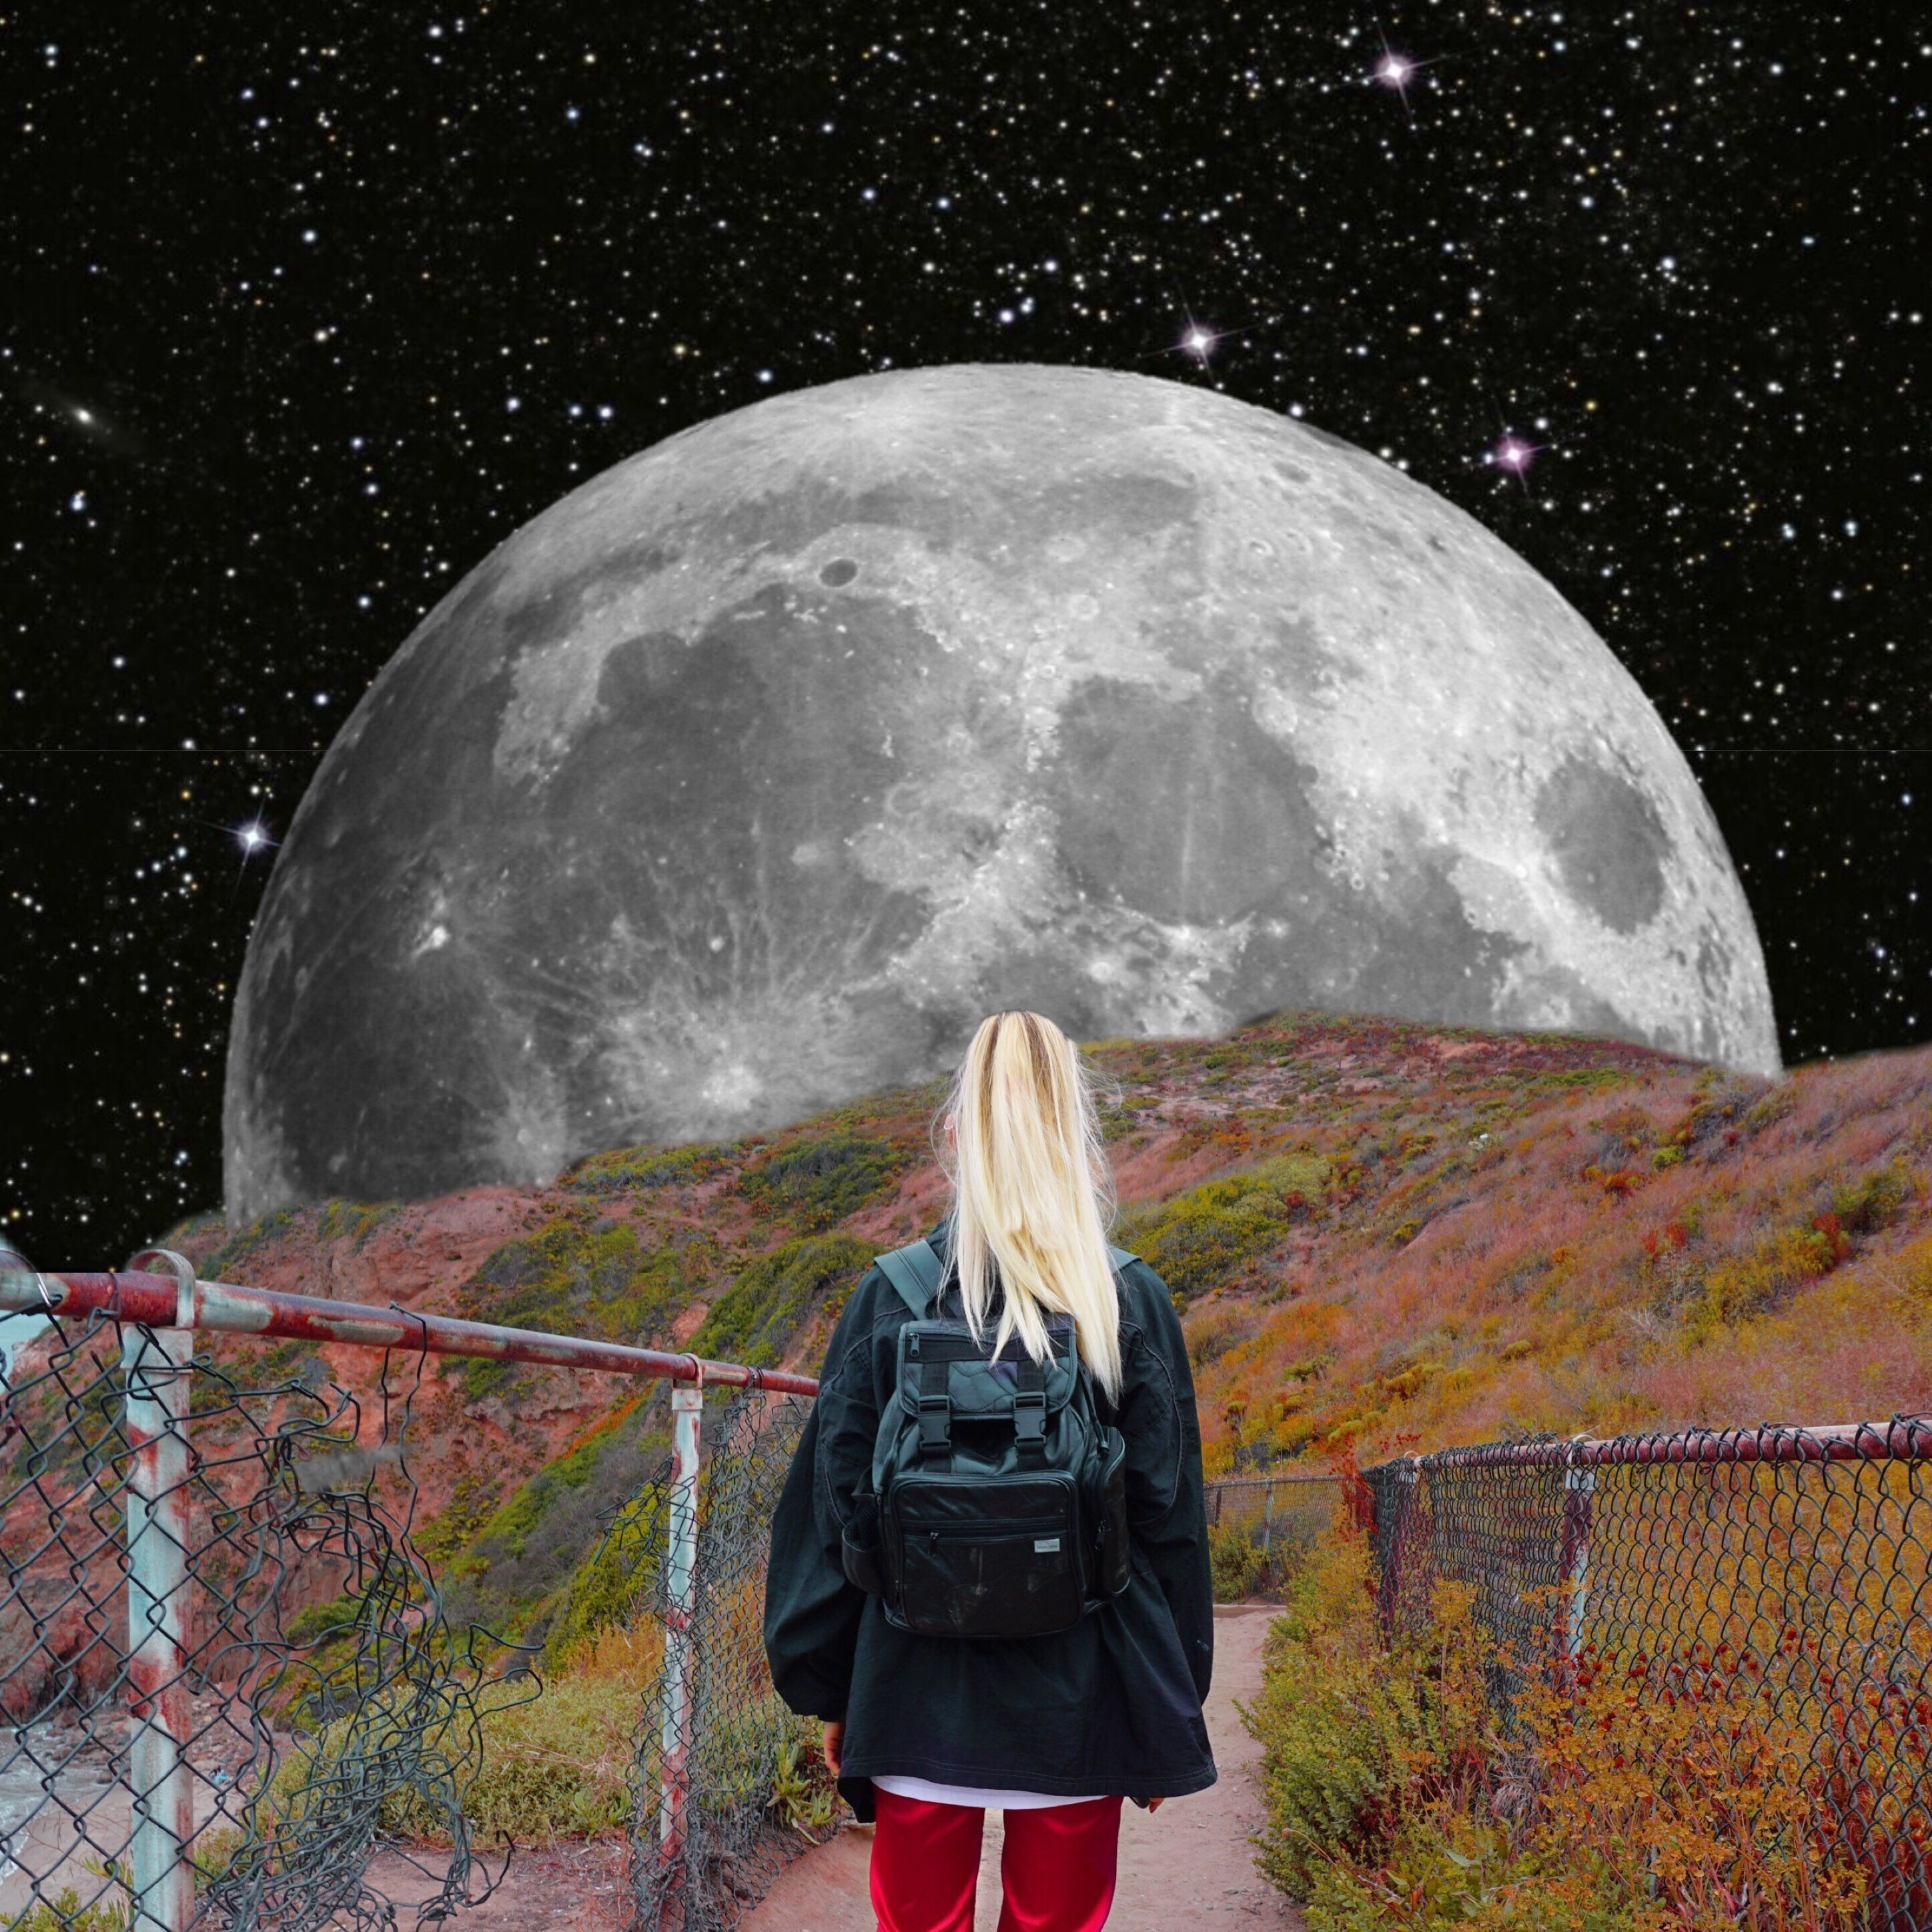 #freetoedit #nationalmoonday #moonday #moon #lunar #lunarlover #space #spaceart #outerspace #galaxy #outofthisworld #toinfinityandbeyond